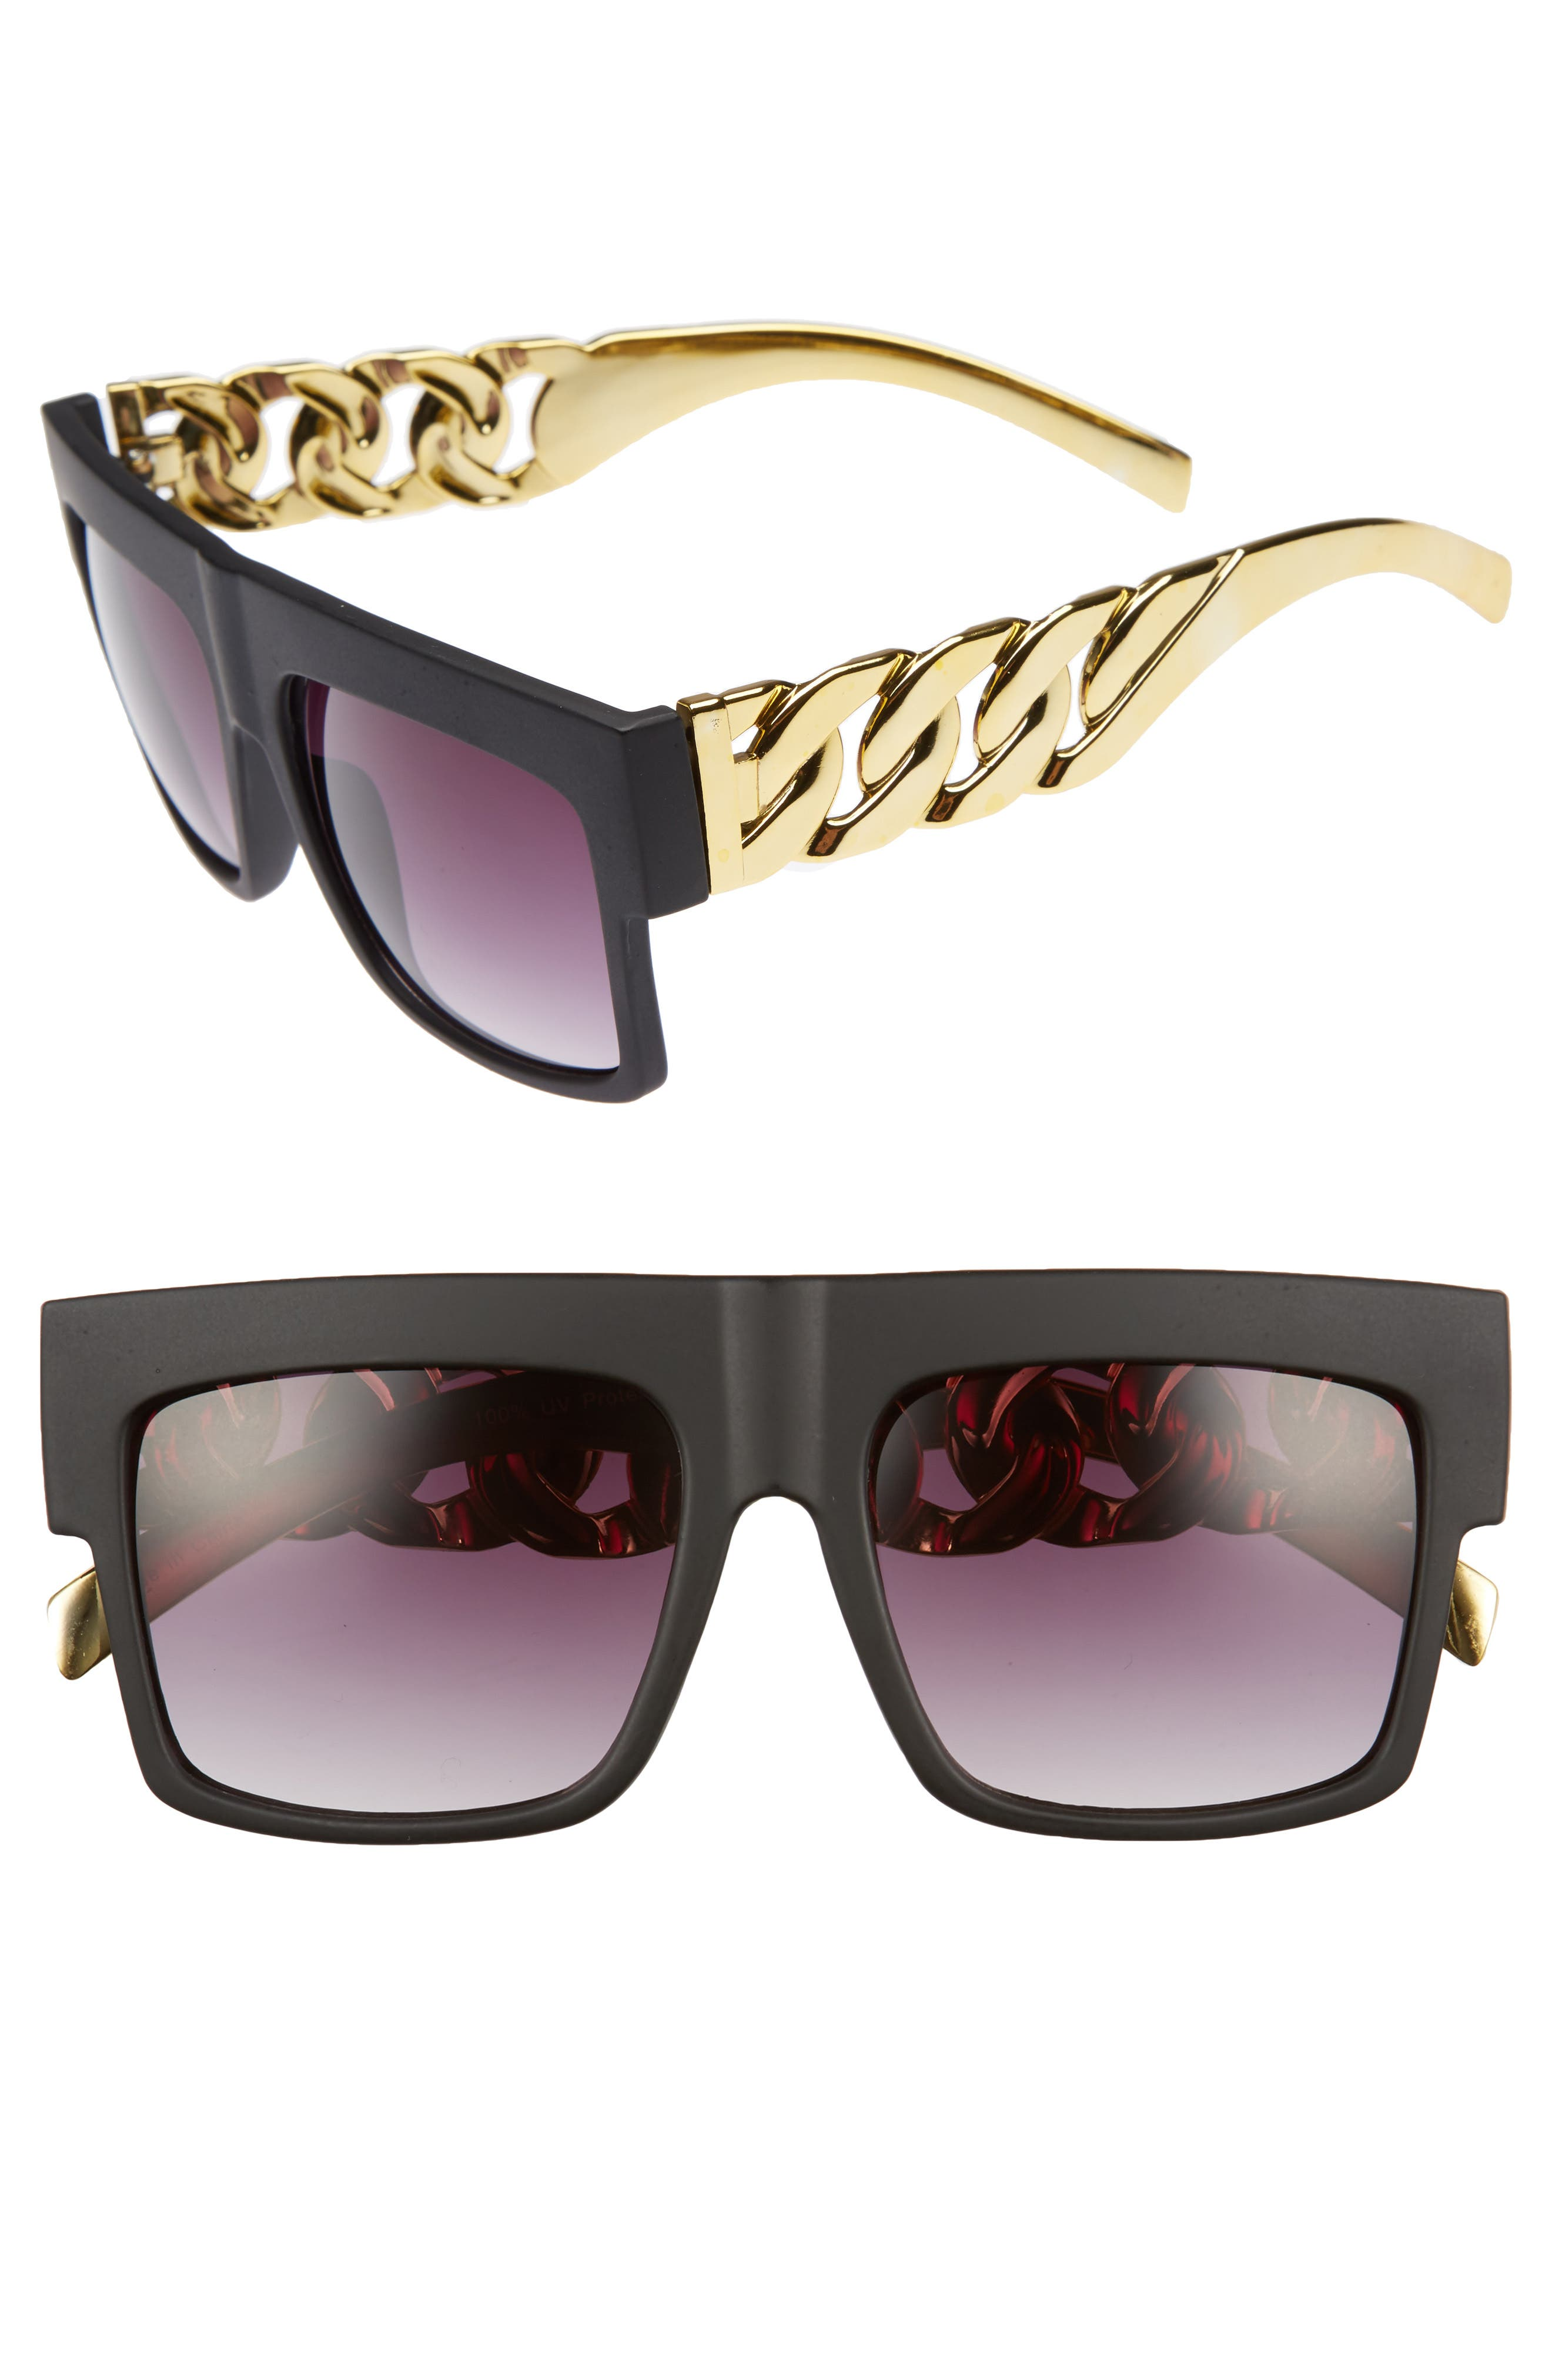 52mm Chain Detail Shield Sunglasses,                         Main,                         color, Black/ Gold